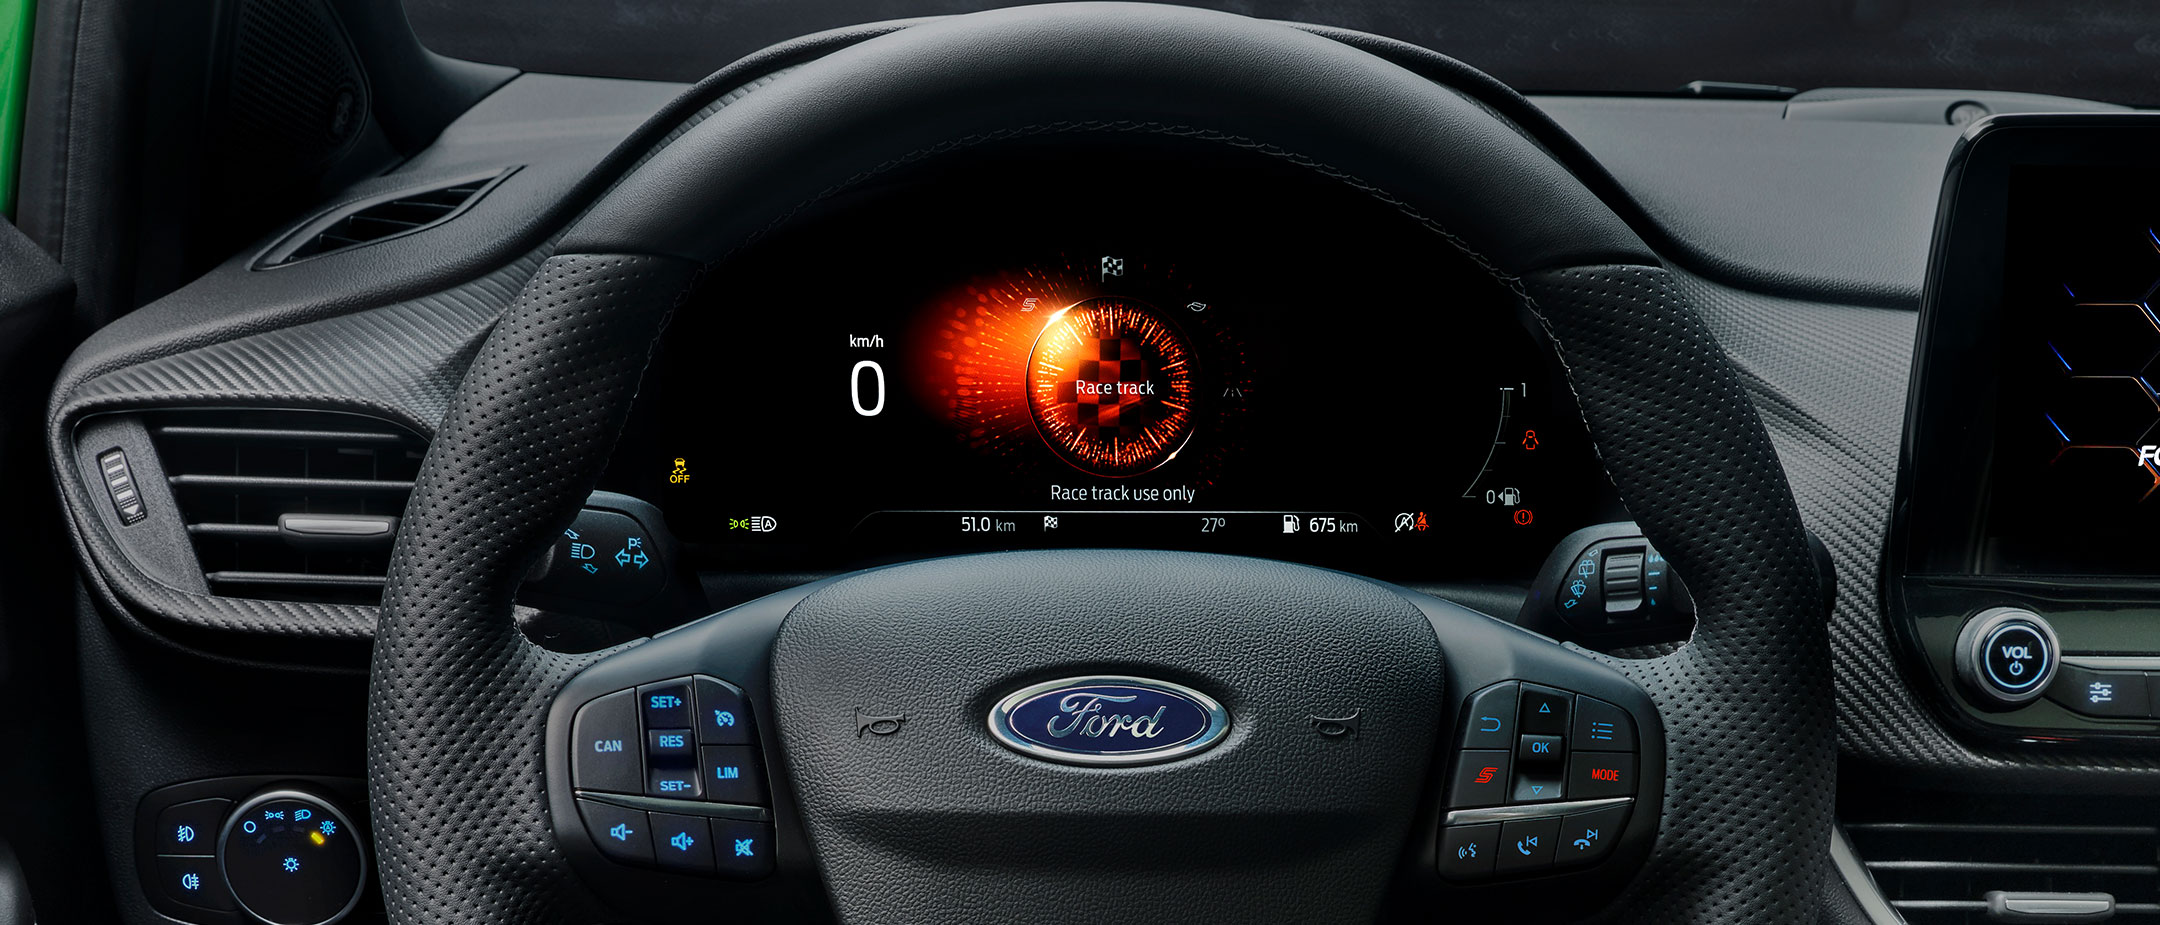 Ford Puma ST dashboard showing drive modes